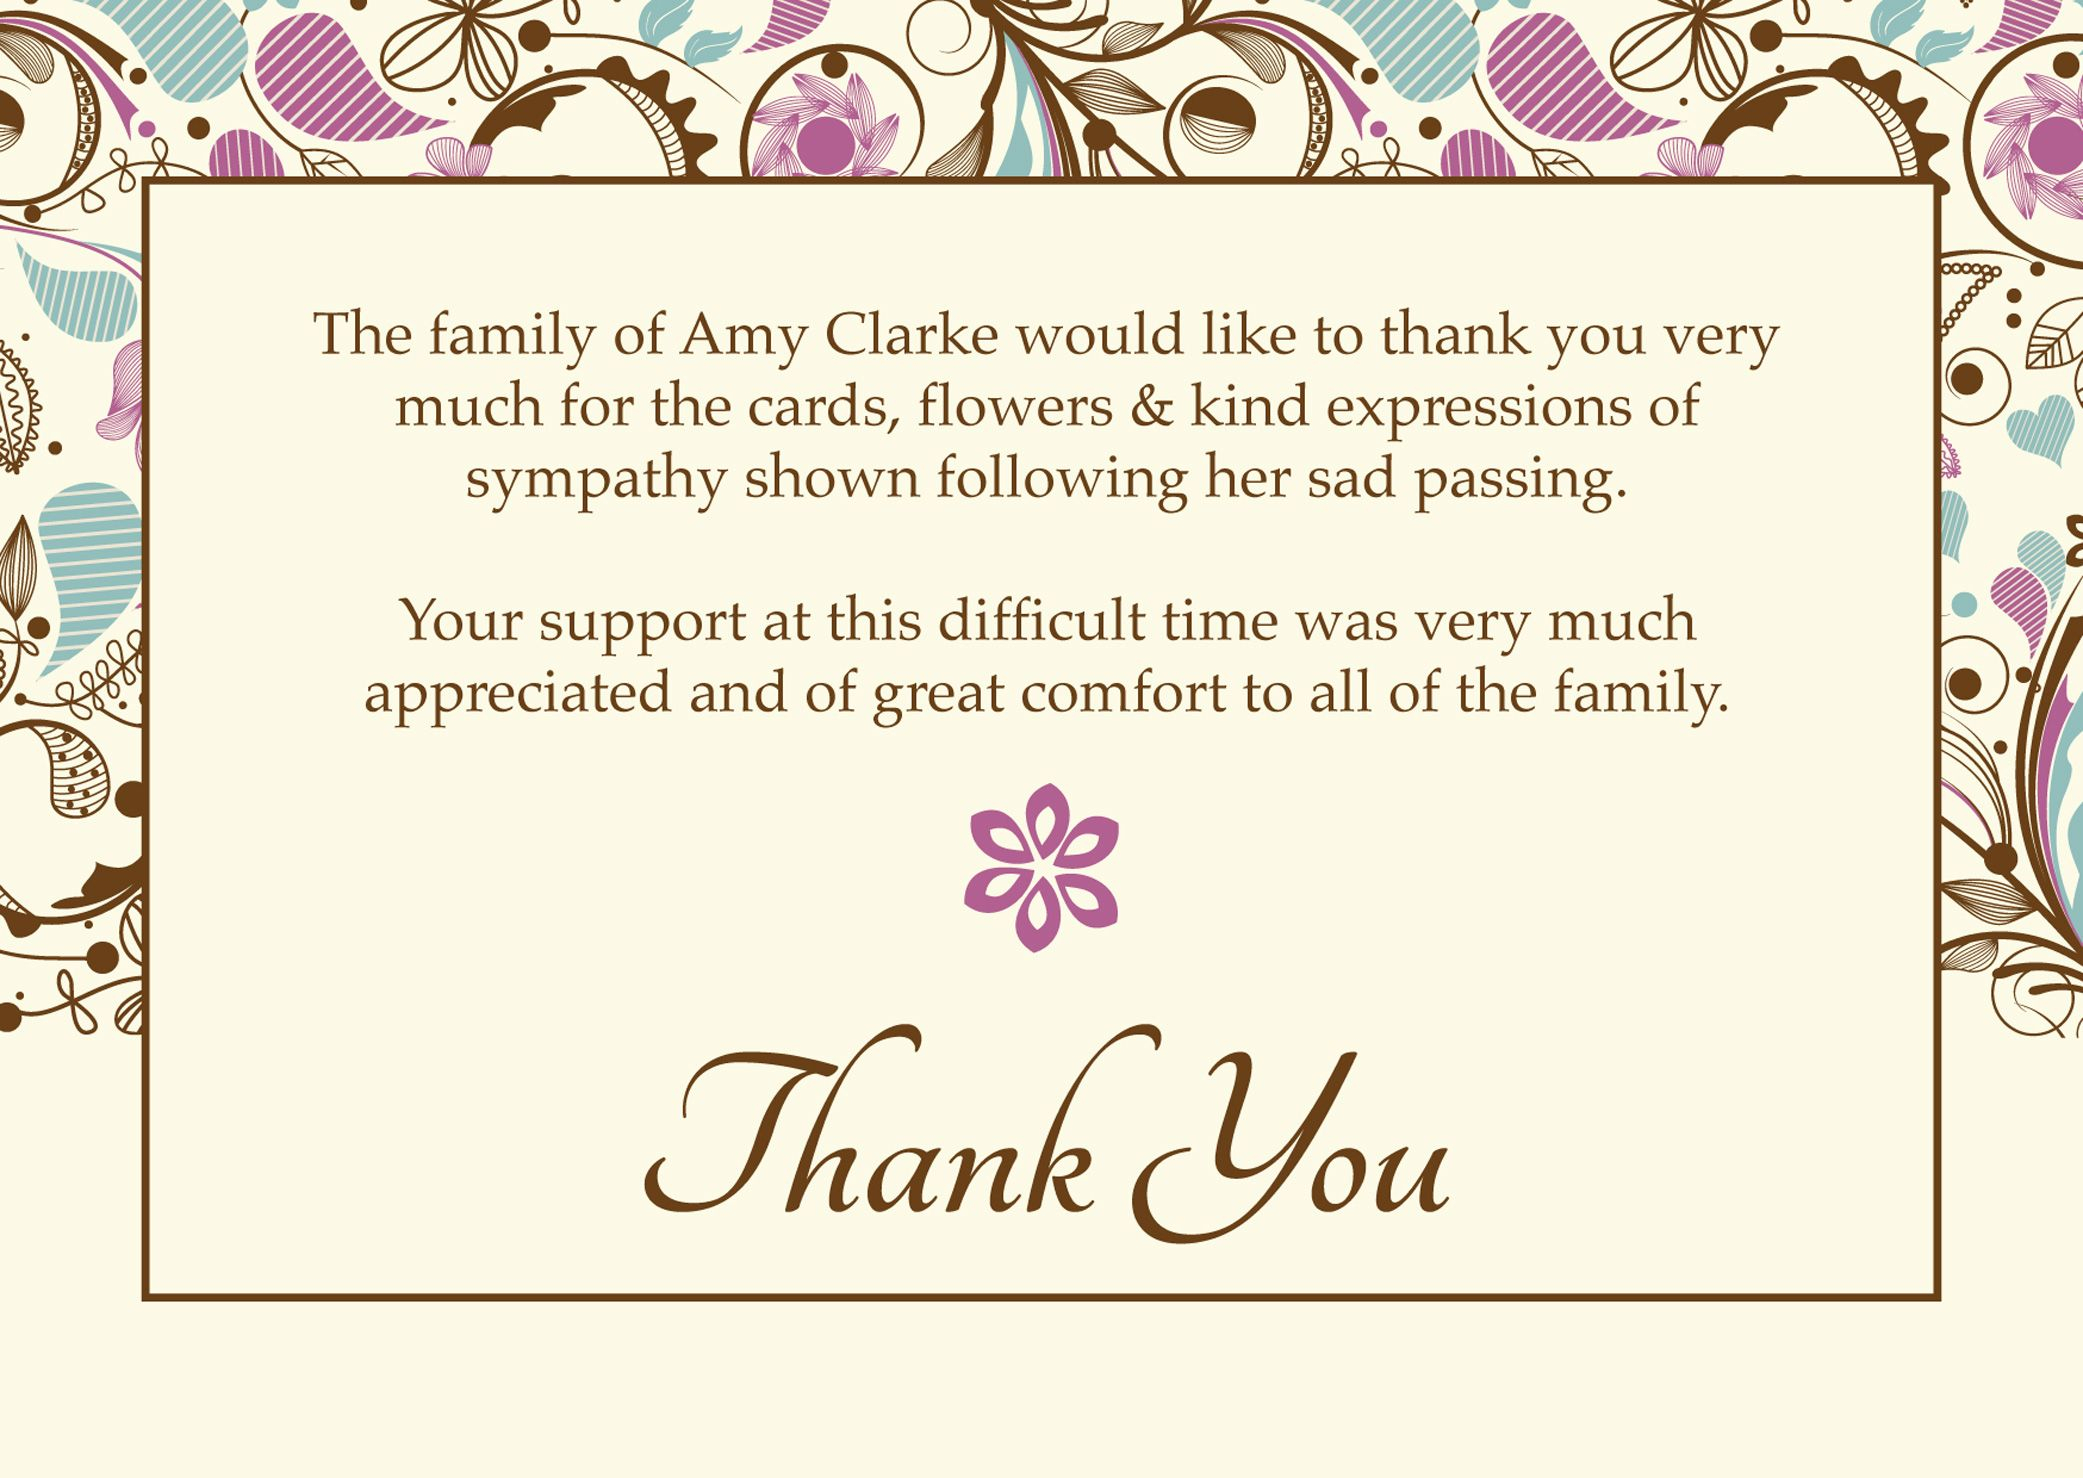 Images Of Thank You Cards Wallpaper Free With Hd Desktop With Sympathy Thank You Card Template